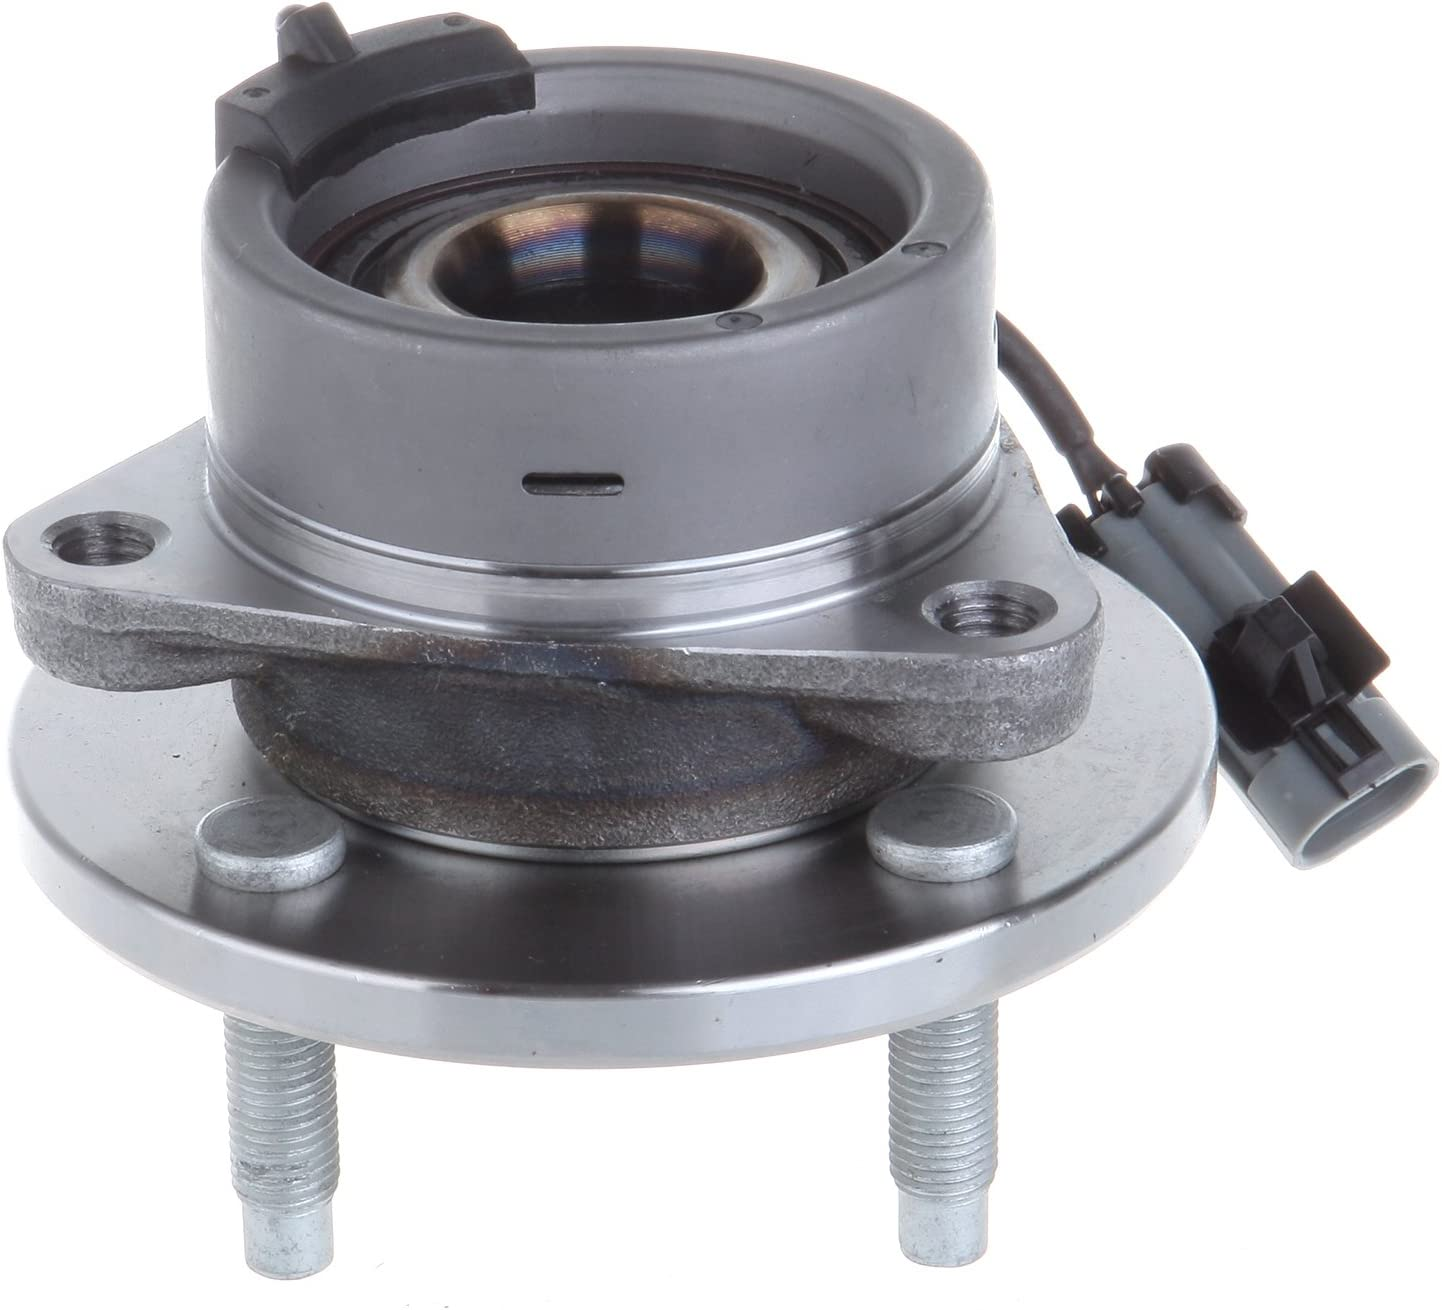 1,2,3 4 Lug W//ABS Pursuit; Saturn Ion Rear Wheel Hub and Bearing Assembly for Chevy Cobalt; Pontiac G5 Both Pair Brand New 512247 x2